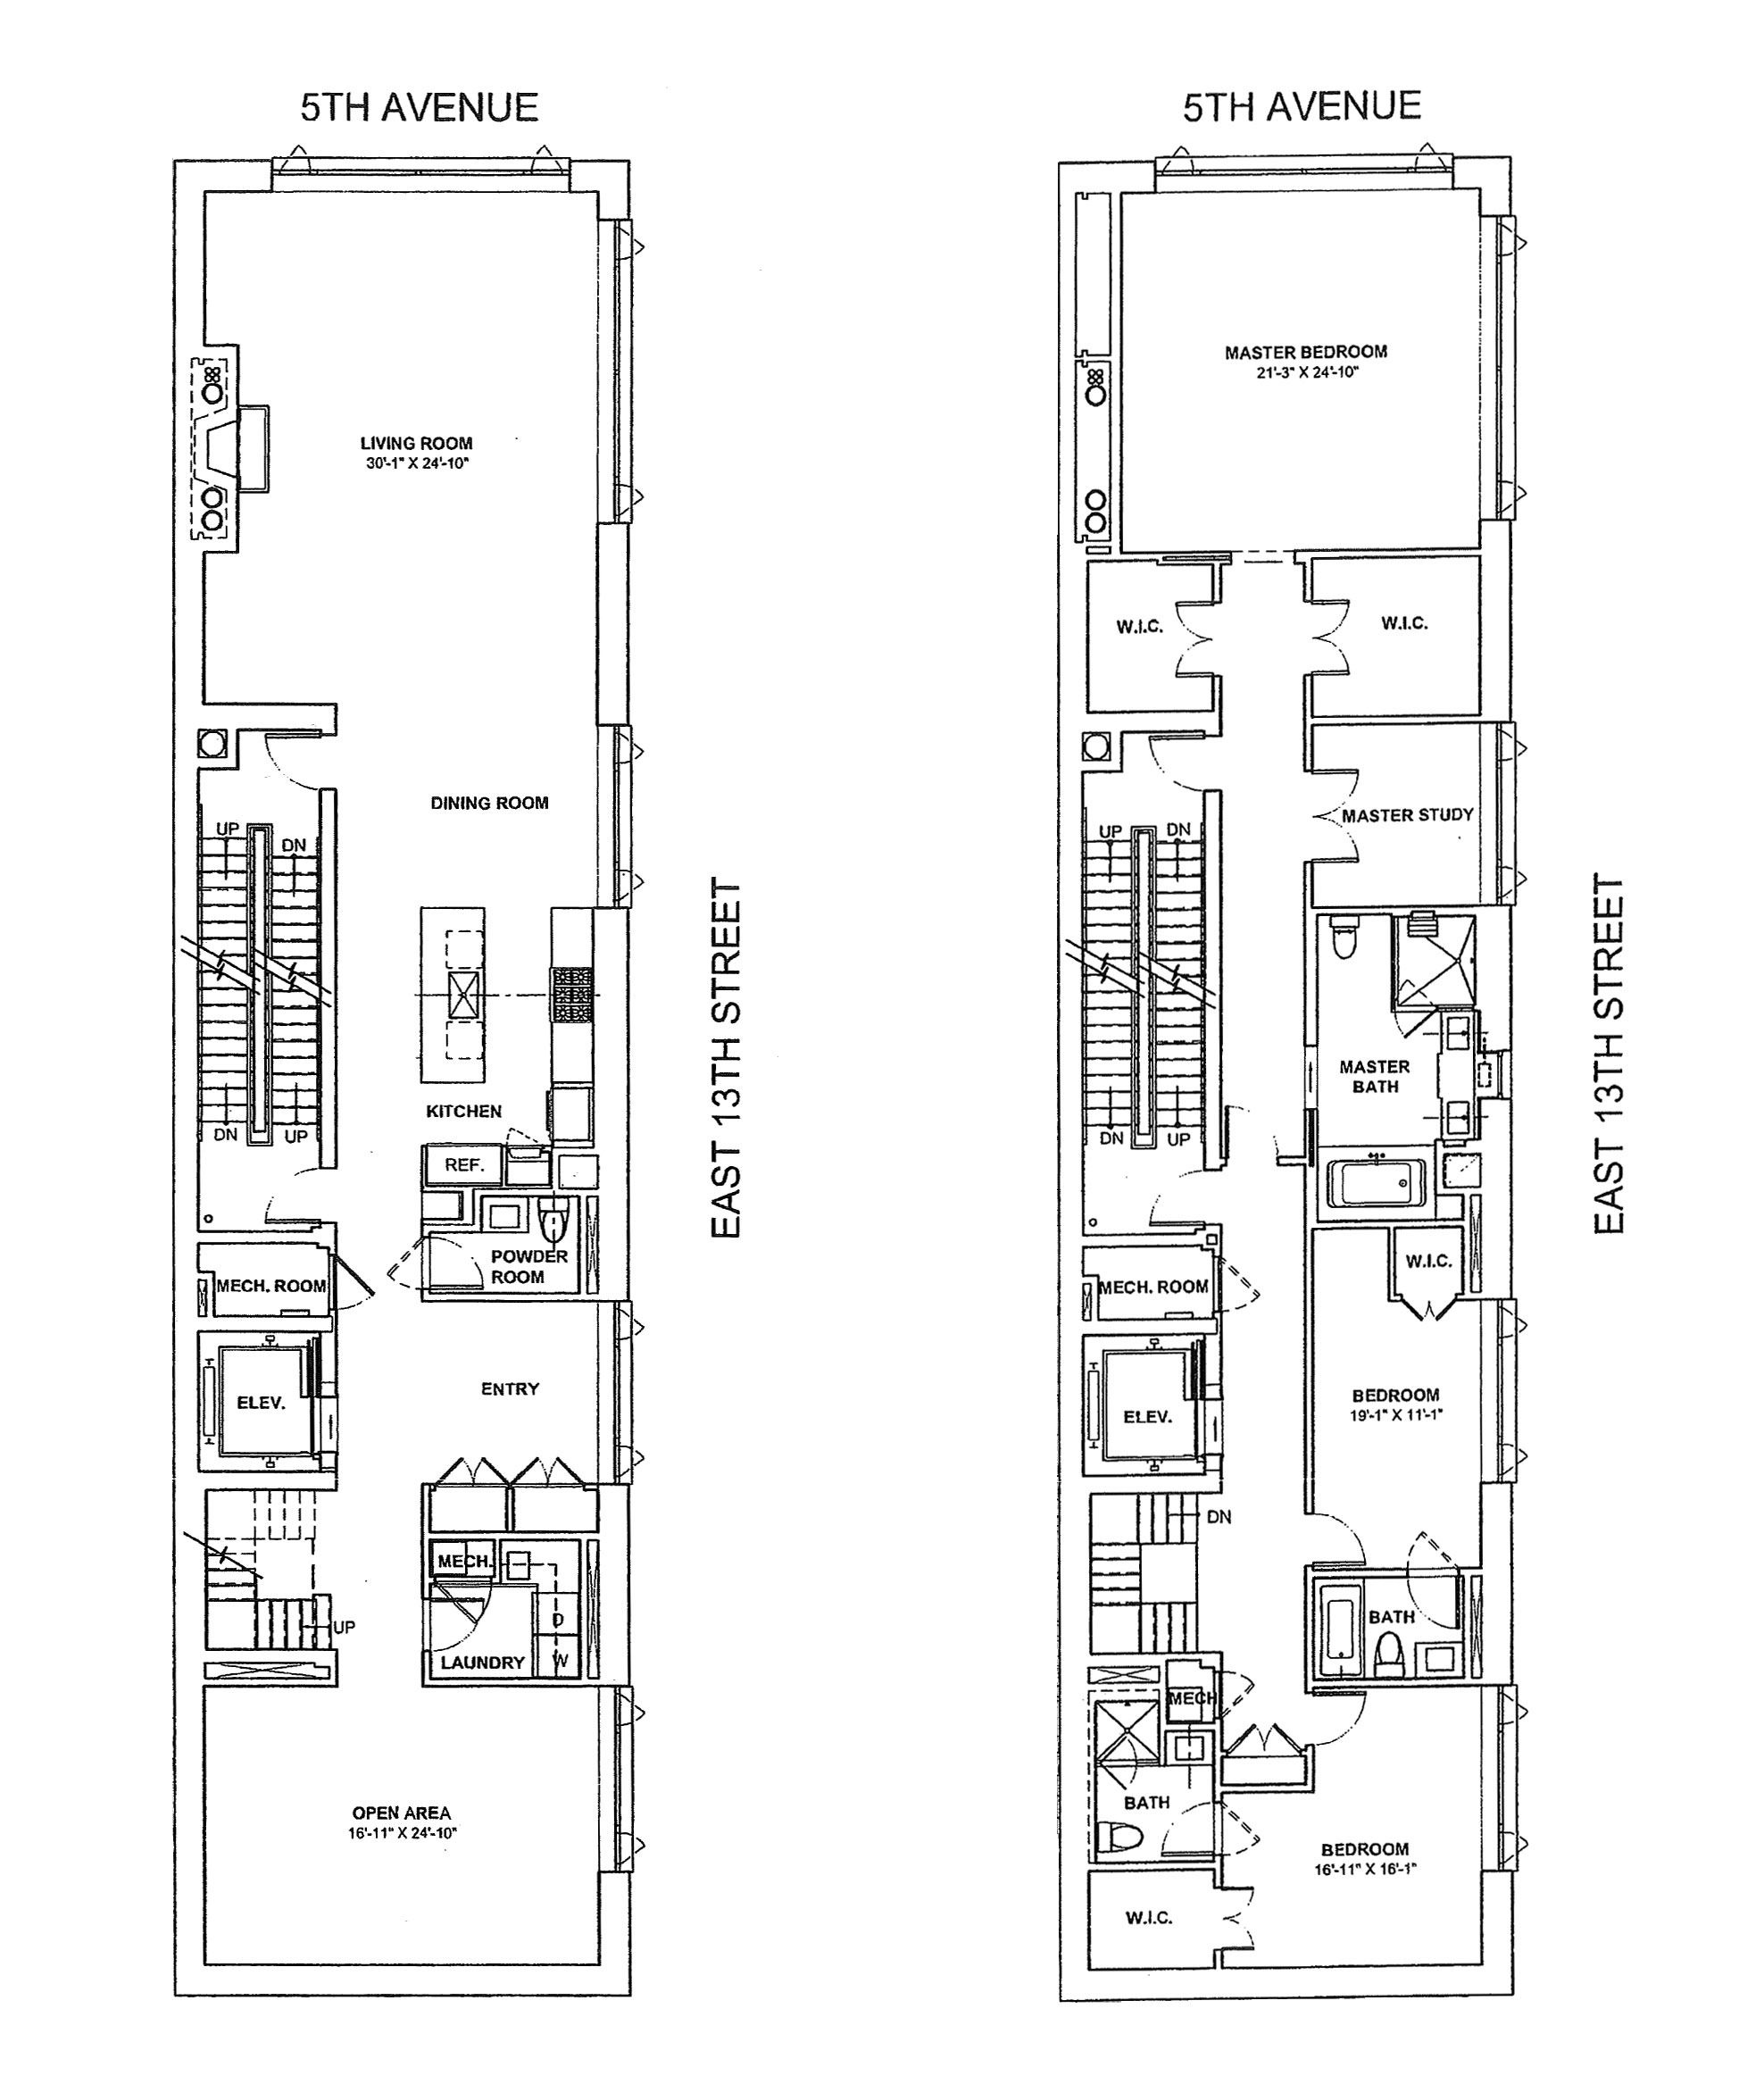 Floor plan of 61 Fifth Avenue, DUPLEX1 - Greenwich Village, New York